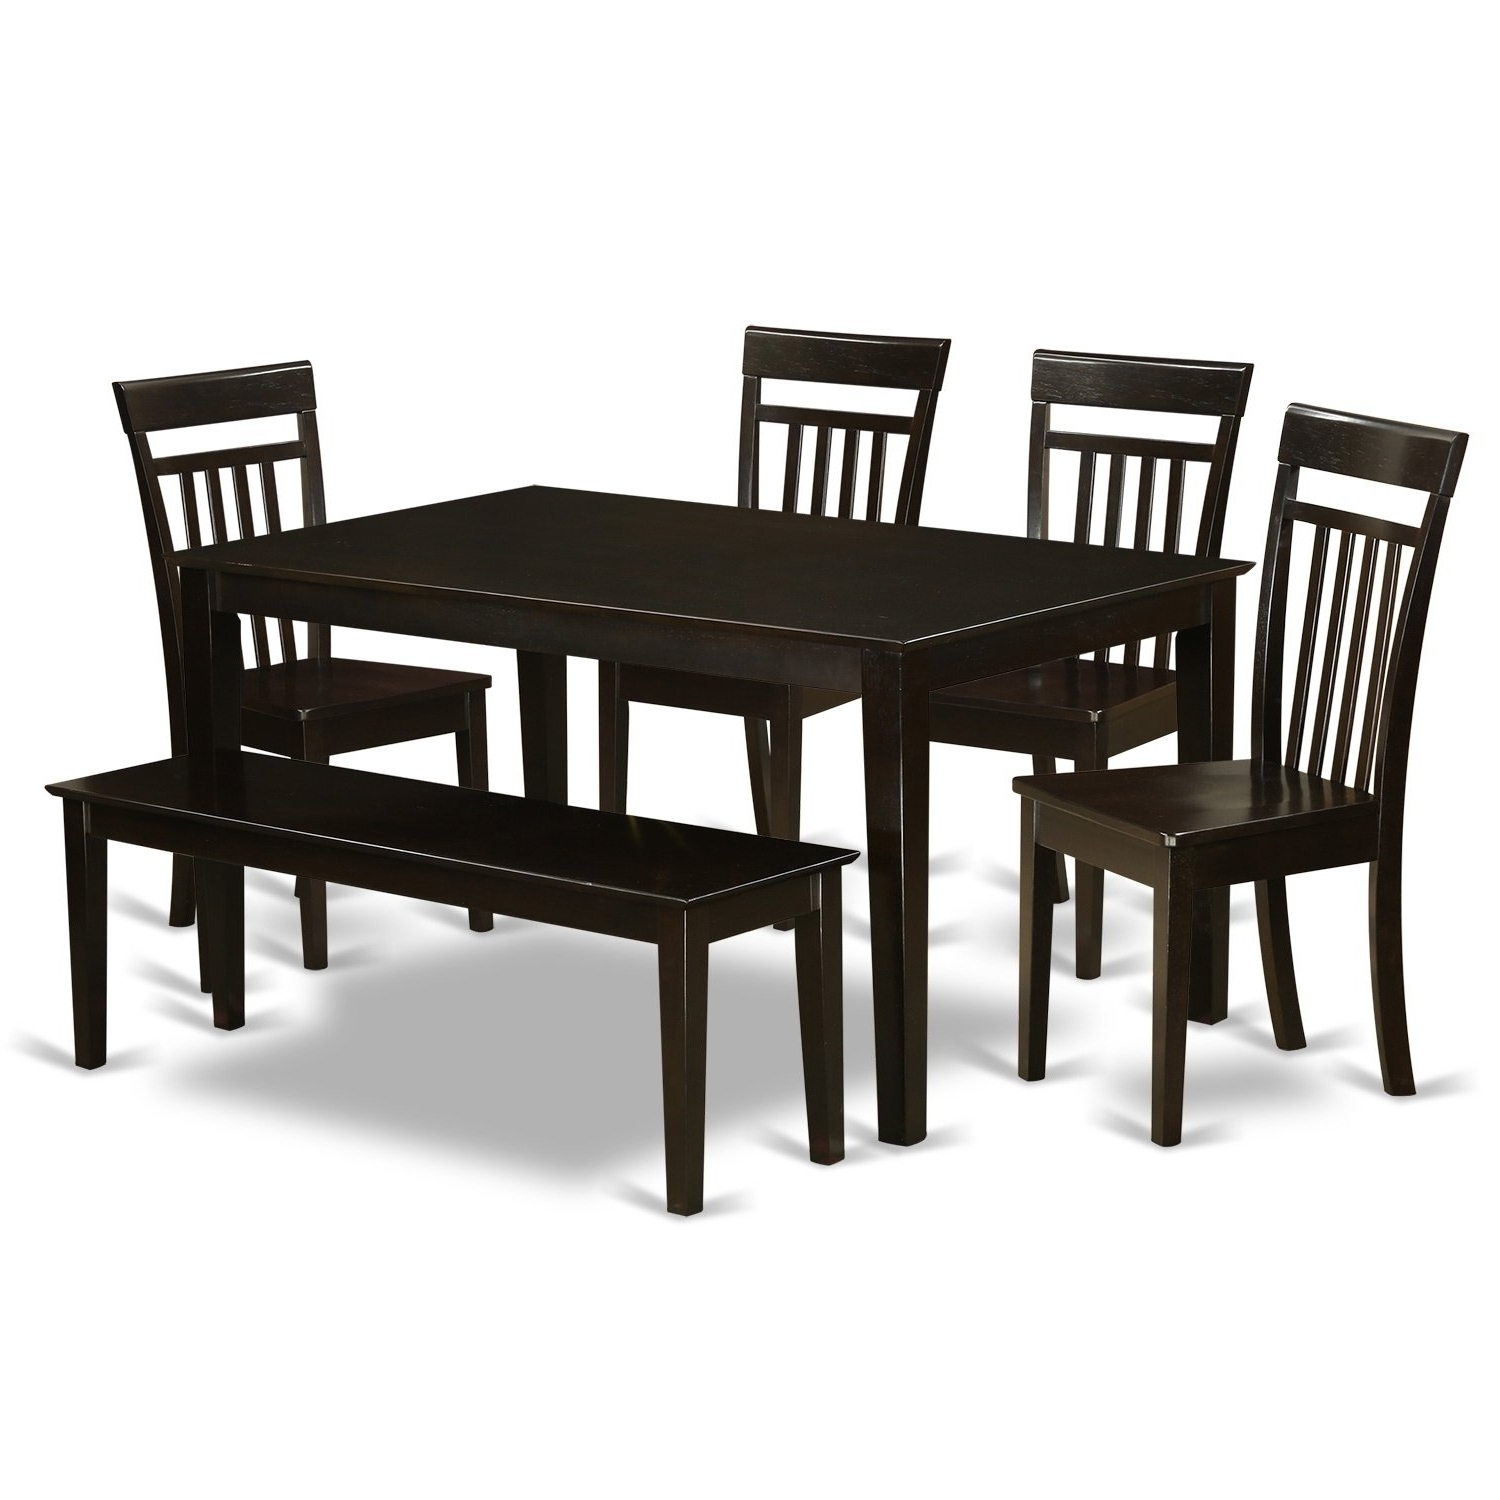 Caden 6 Piece Rectangle Dining Sets Intended For Most Up To Date Cap6S Cap 6 Pc Dining Set  Table And 4 Kitchen Chairs Plus A Bench (Gallery 11 of 25)